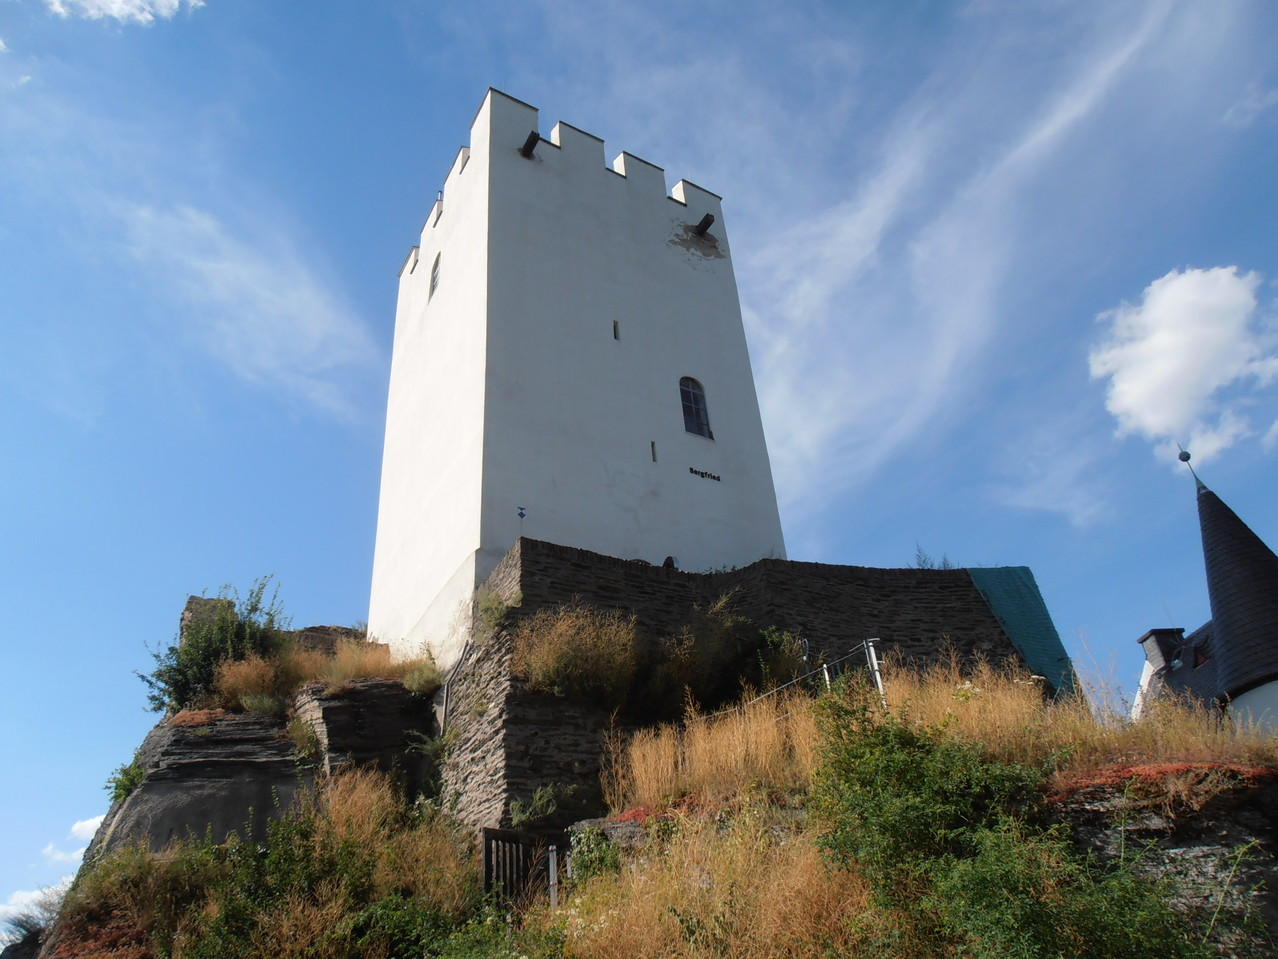 Bergfried der Sterrenberg